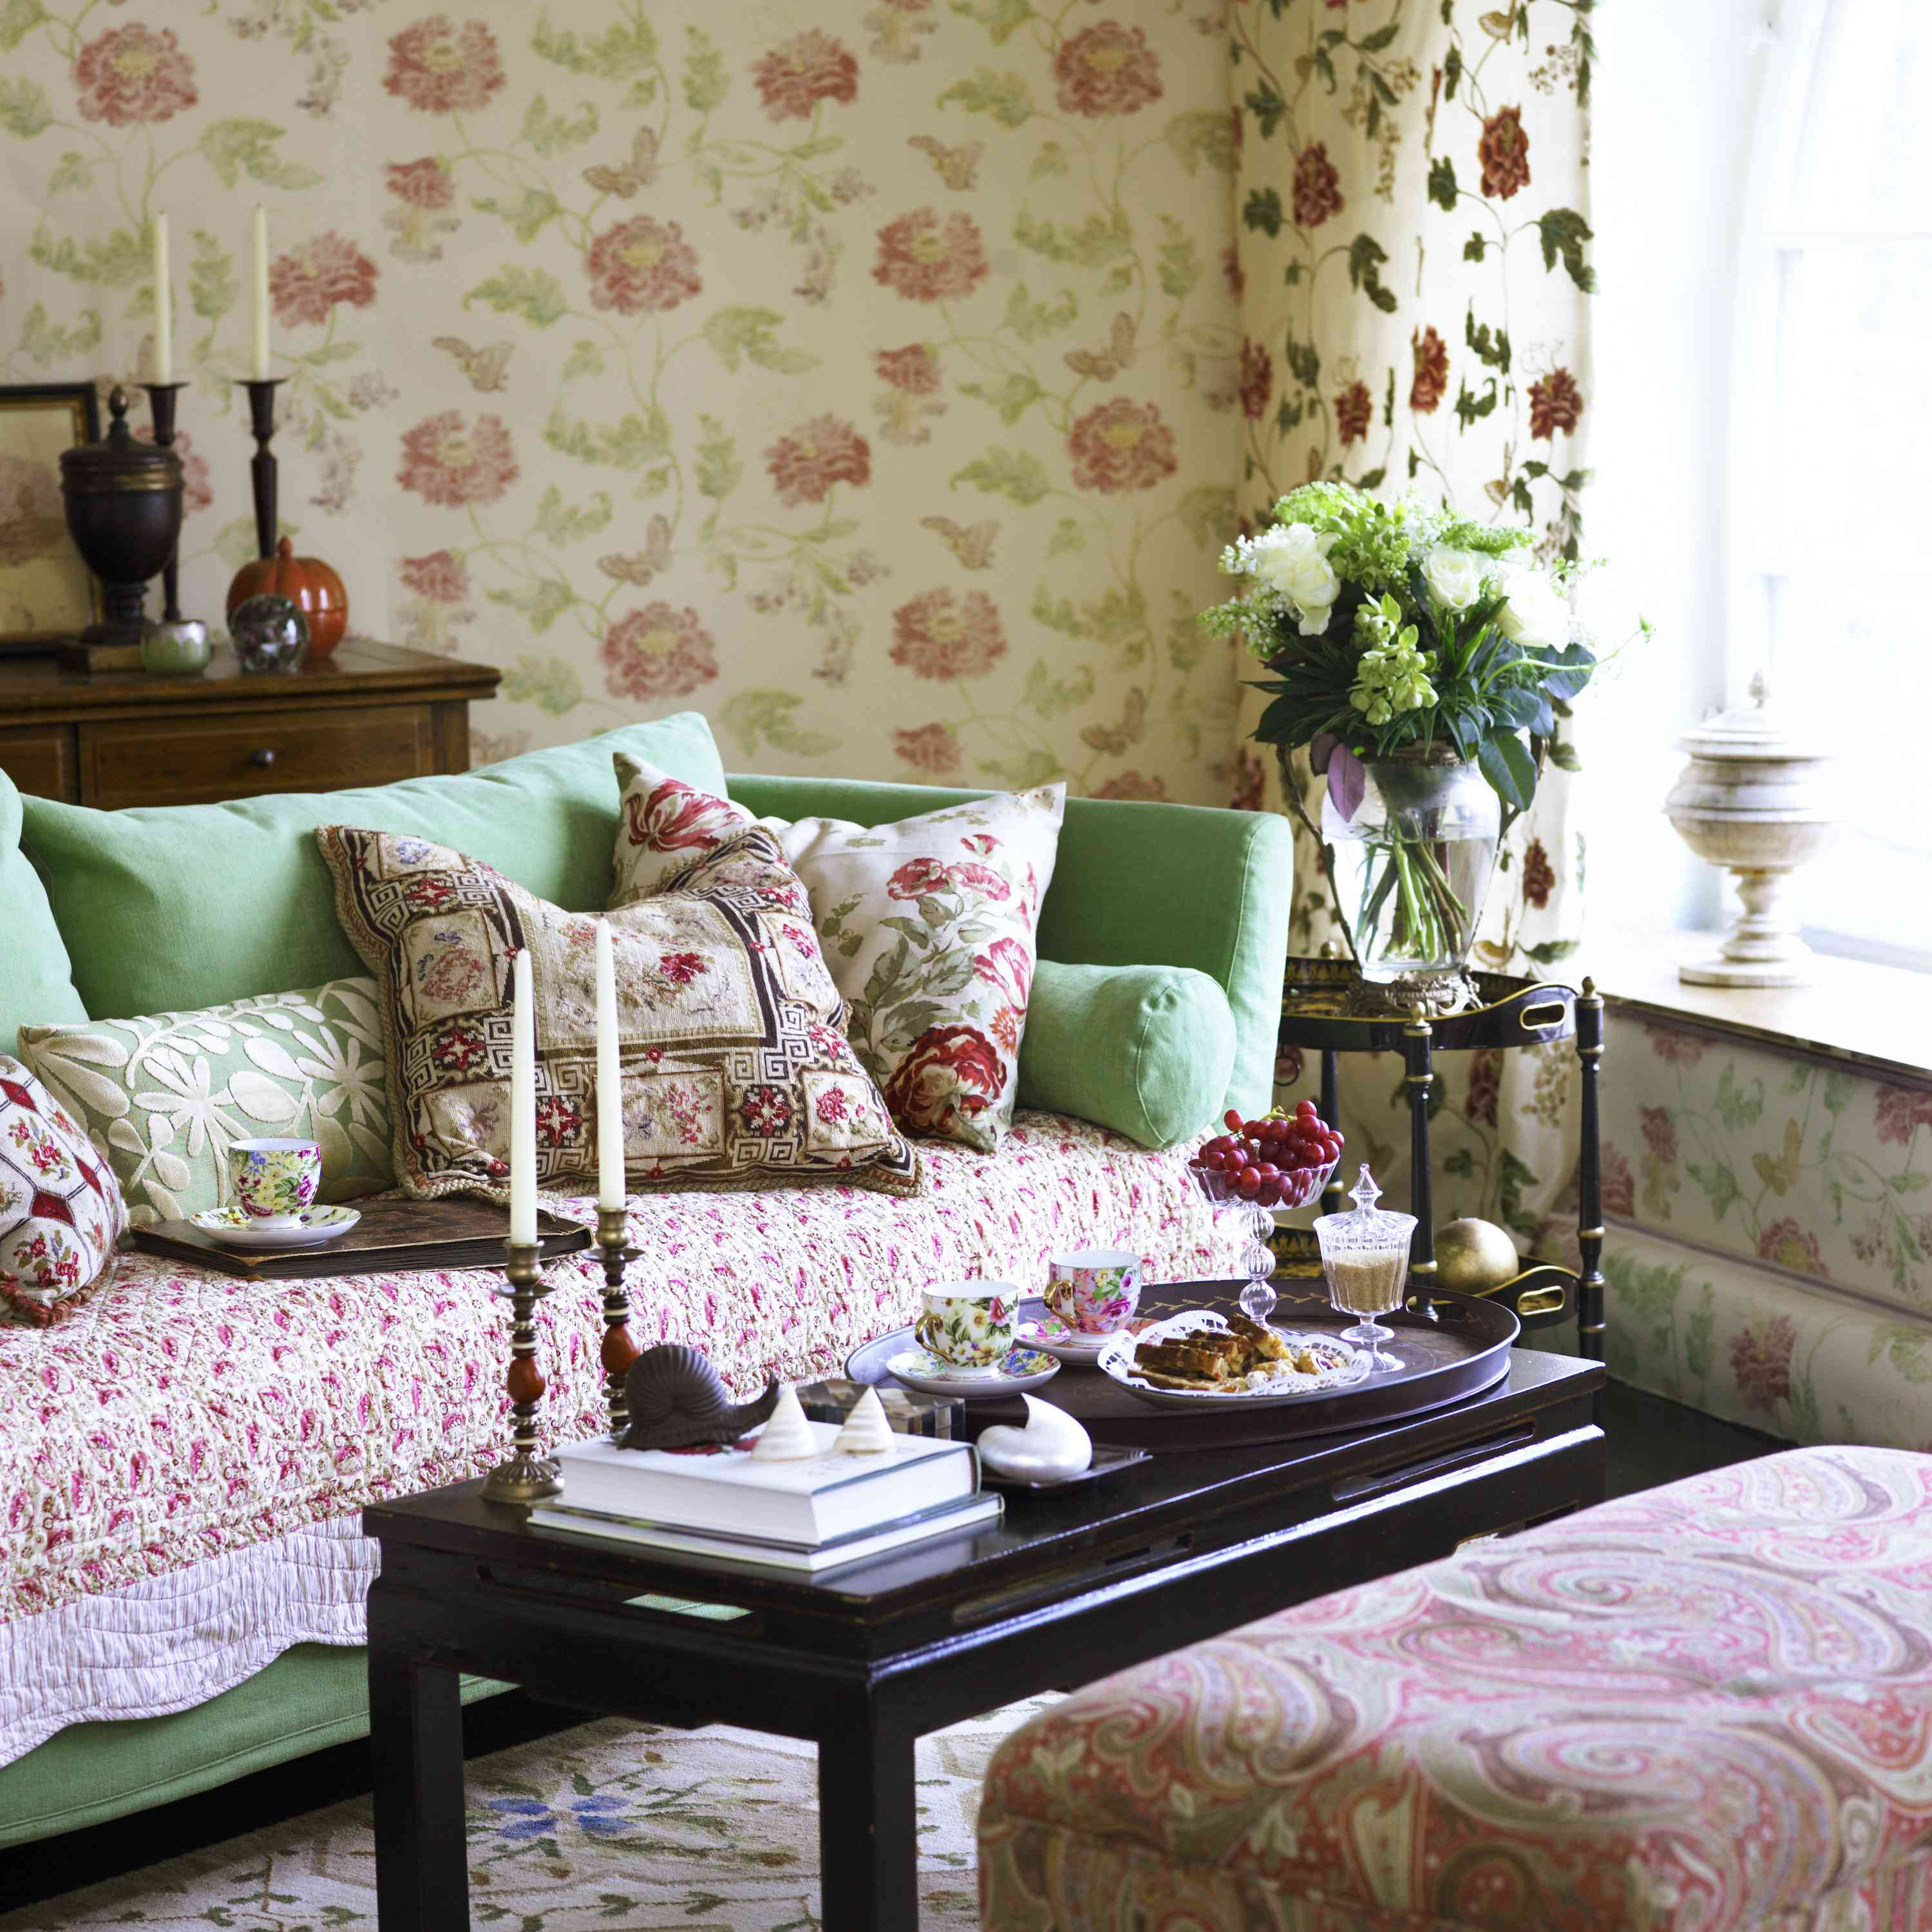 granny chic room with floral rose wallpaper and seafoam green couch